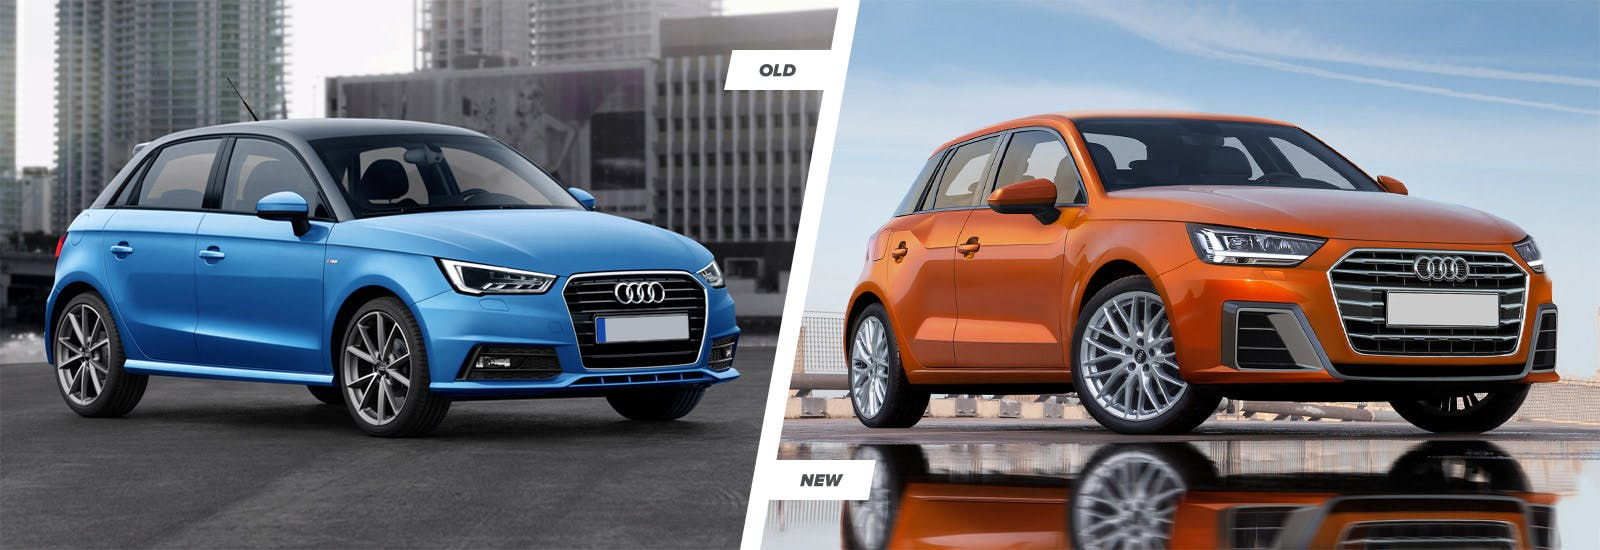 The new a1 should feature a squarer rear end and flatter roofline than the old car especially in five door sportback guise while the q2 s funky